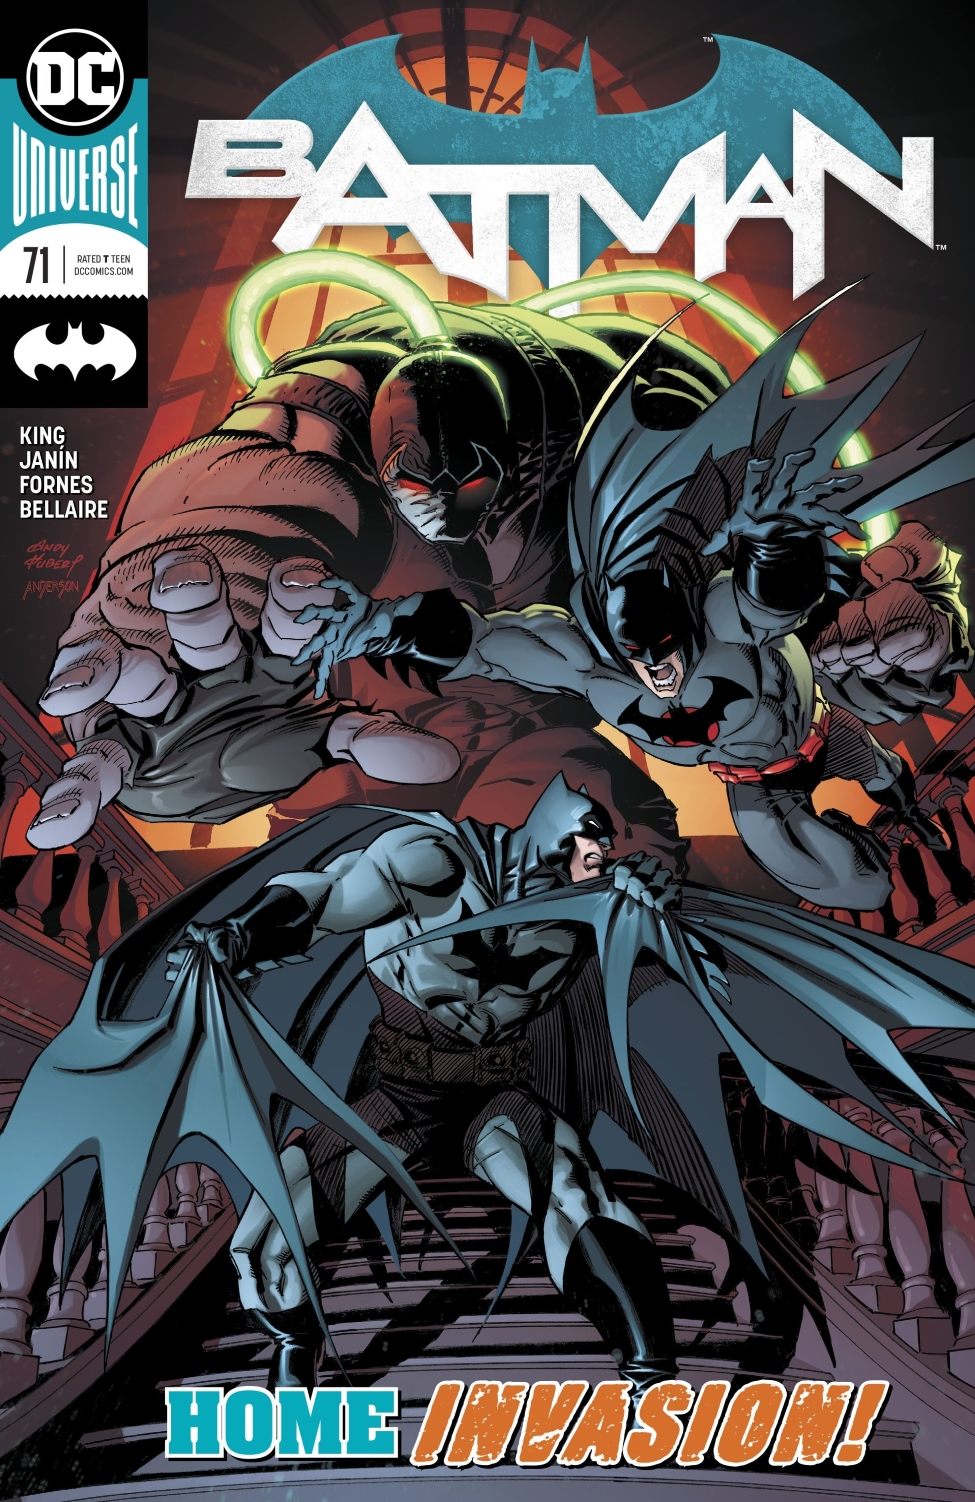 Batman Vol 3 71